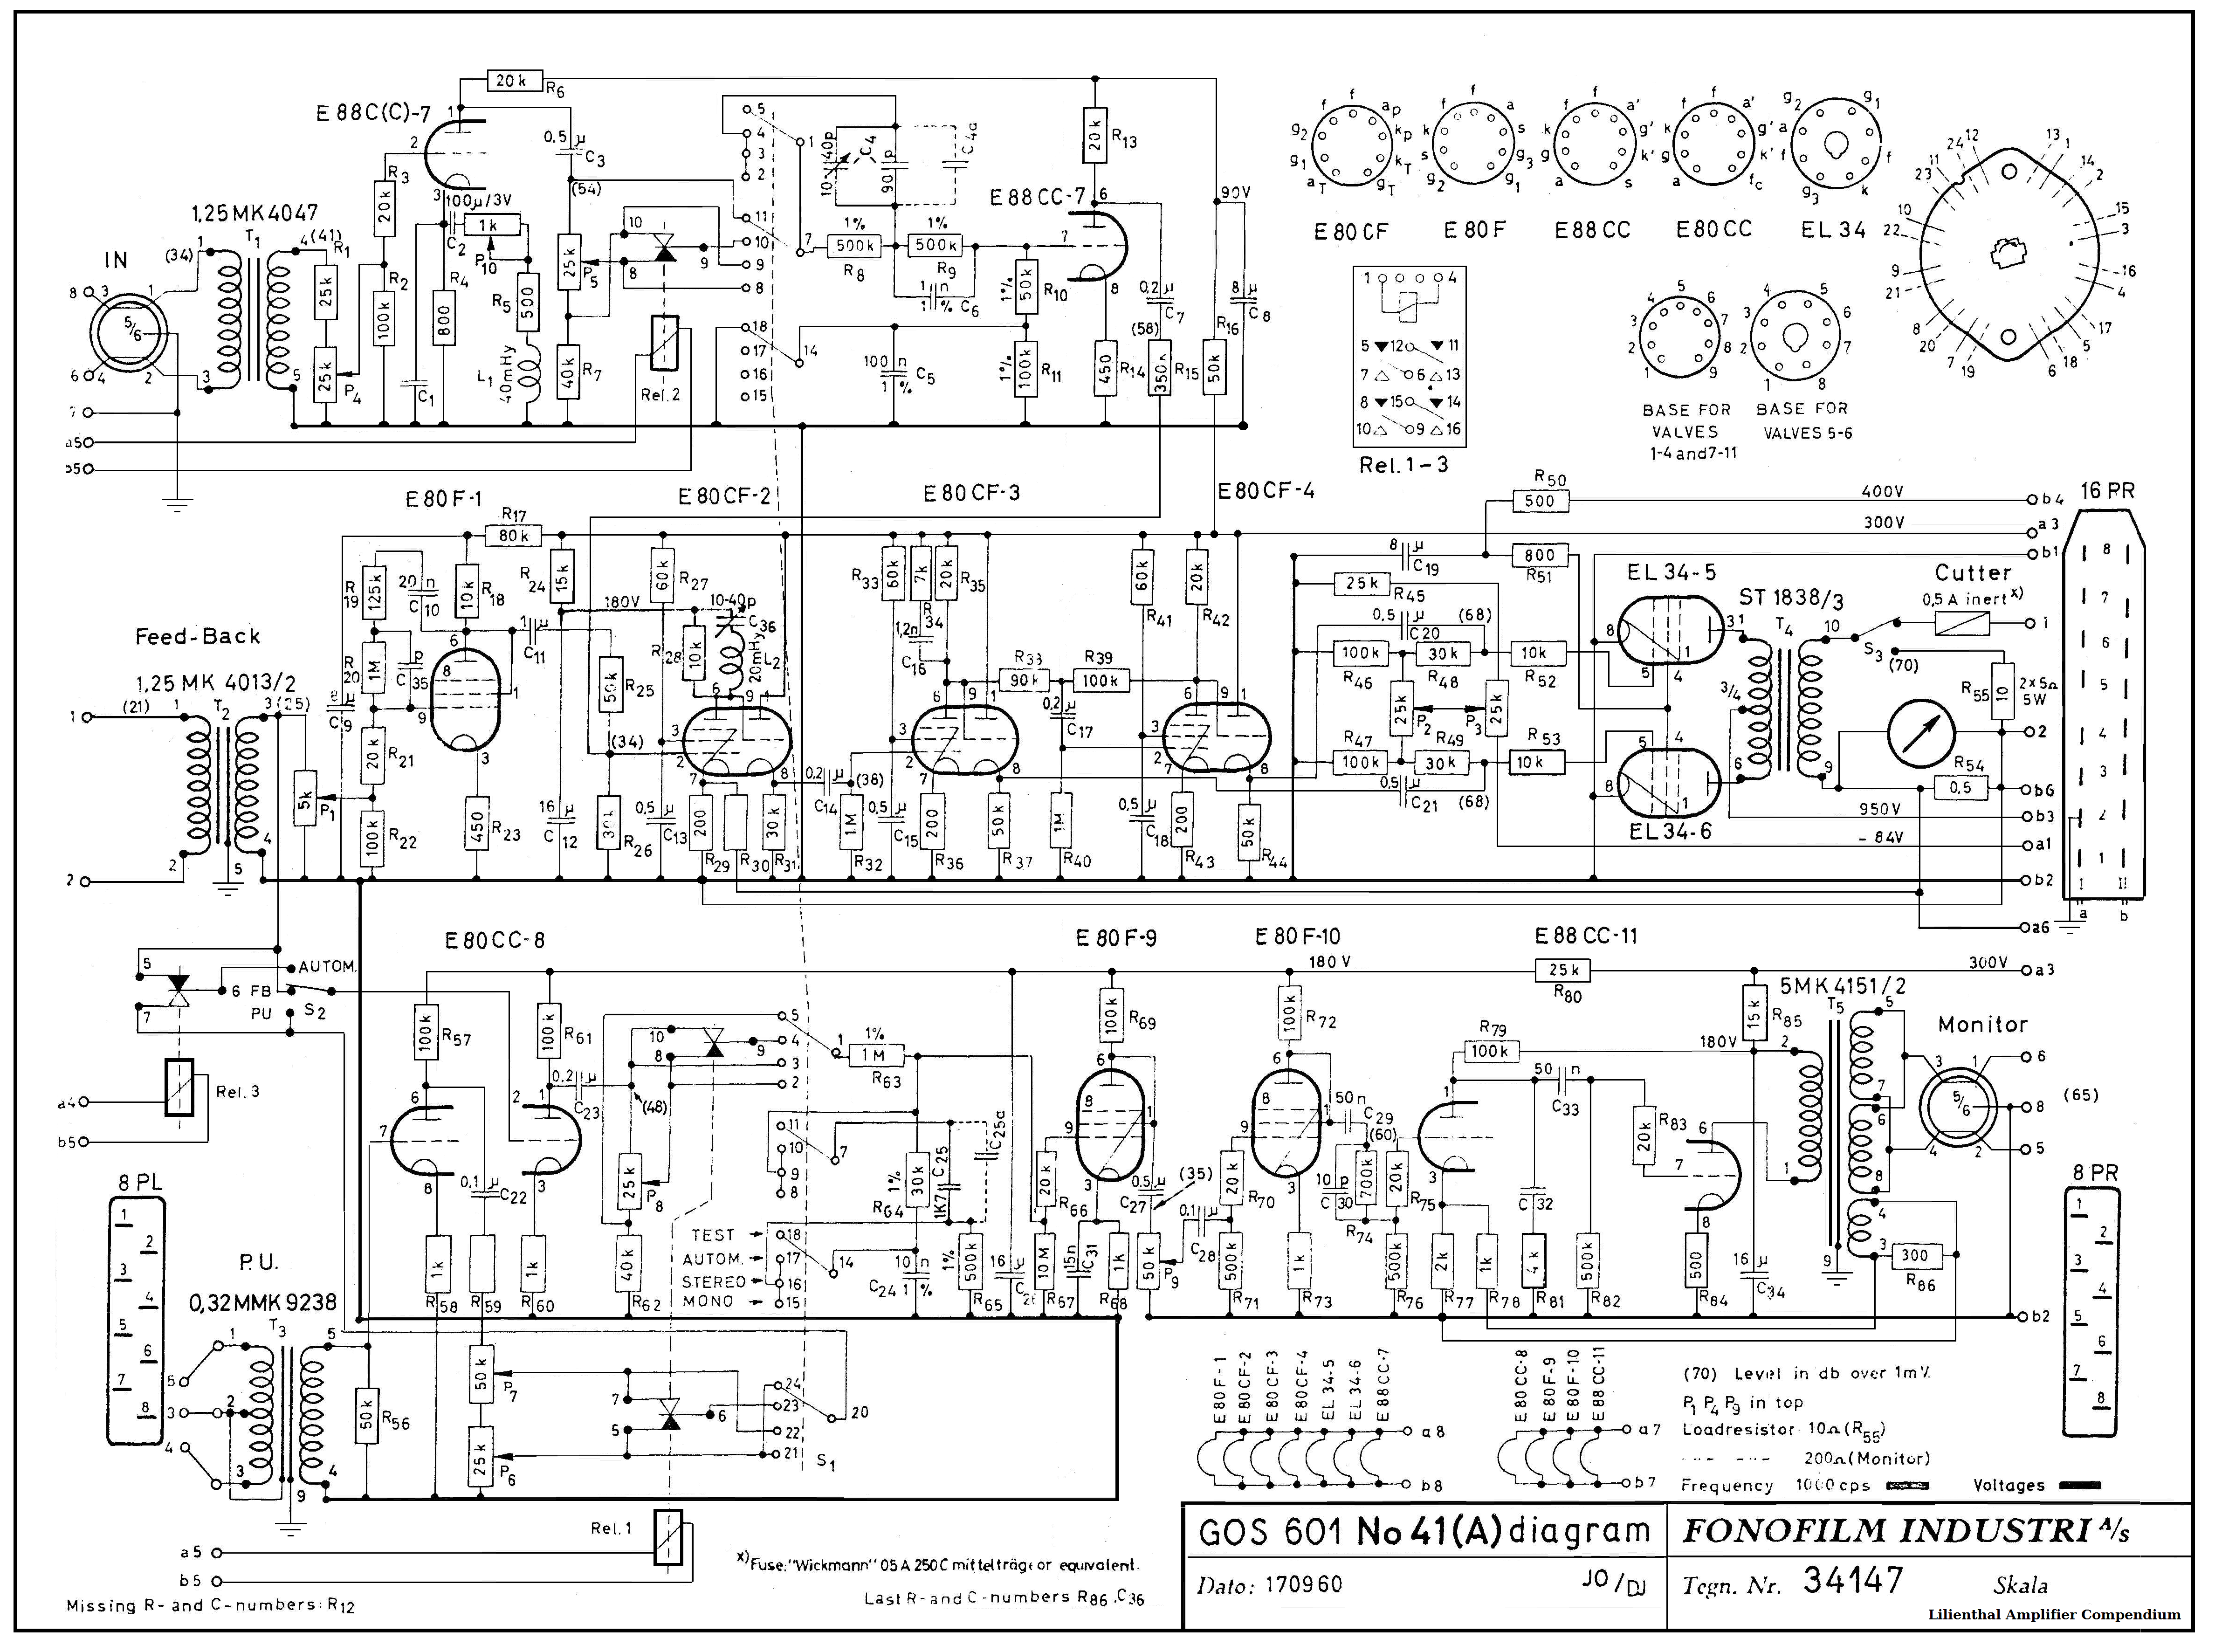 100 Amplifiers Part 3 1955 59 Lilienthal Engineering Free Project Circuit Schematic Passive Baxandall Tone Control